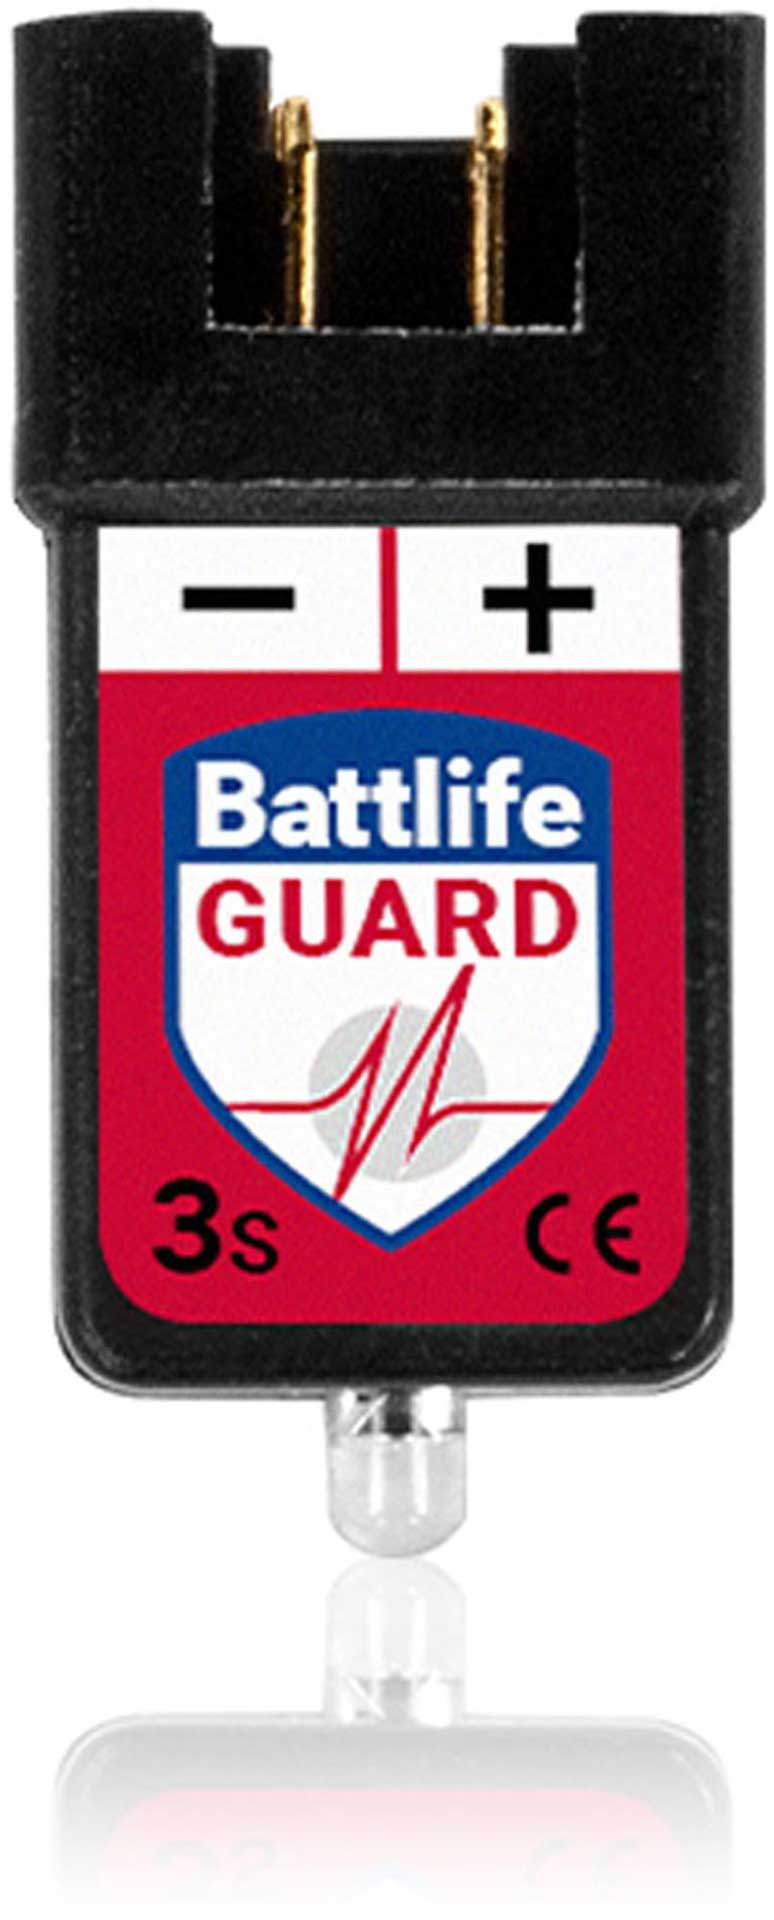 POWERBOX SYSTEMS BATTLIFE GUARD 3S